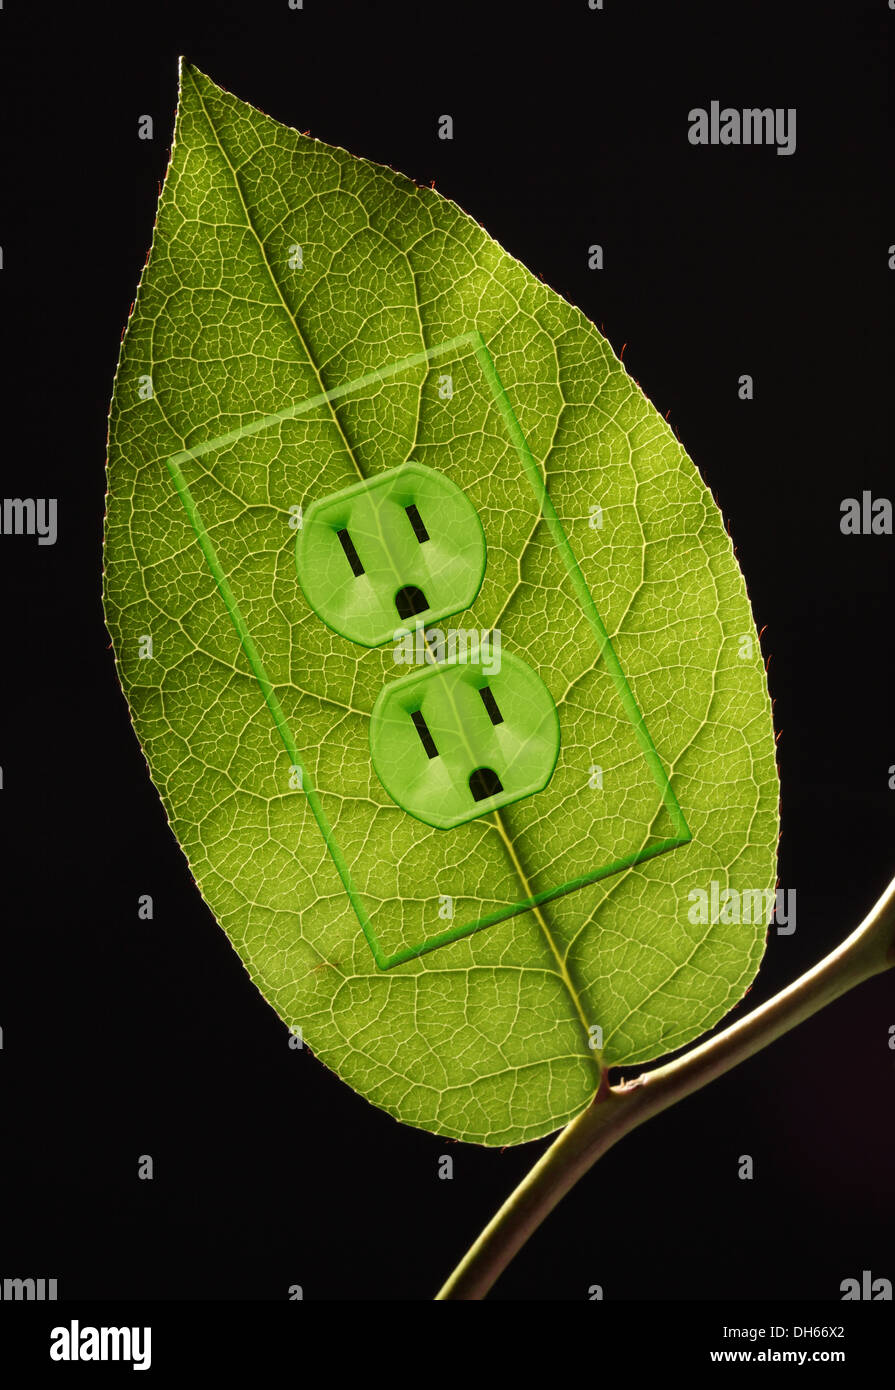 A green plant leaf on a branch with green colored electrical outlets added. Black background - Stock Image